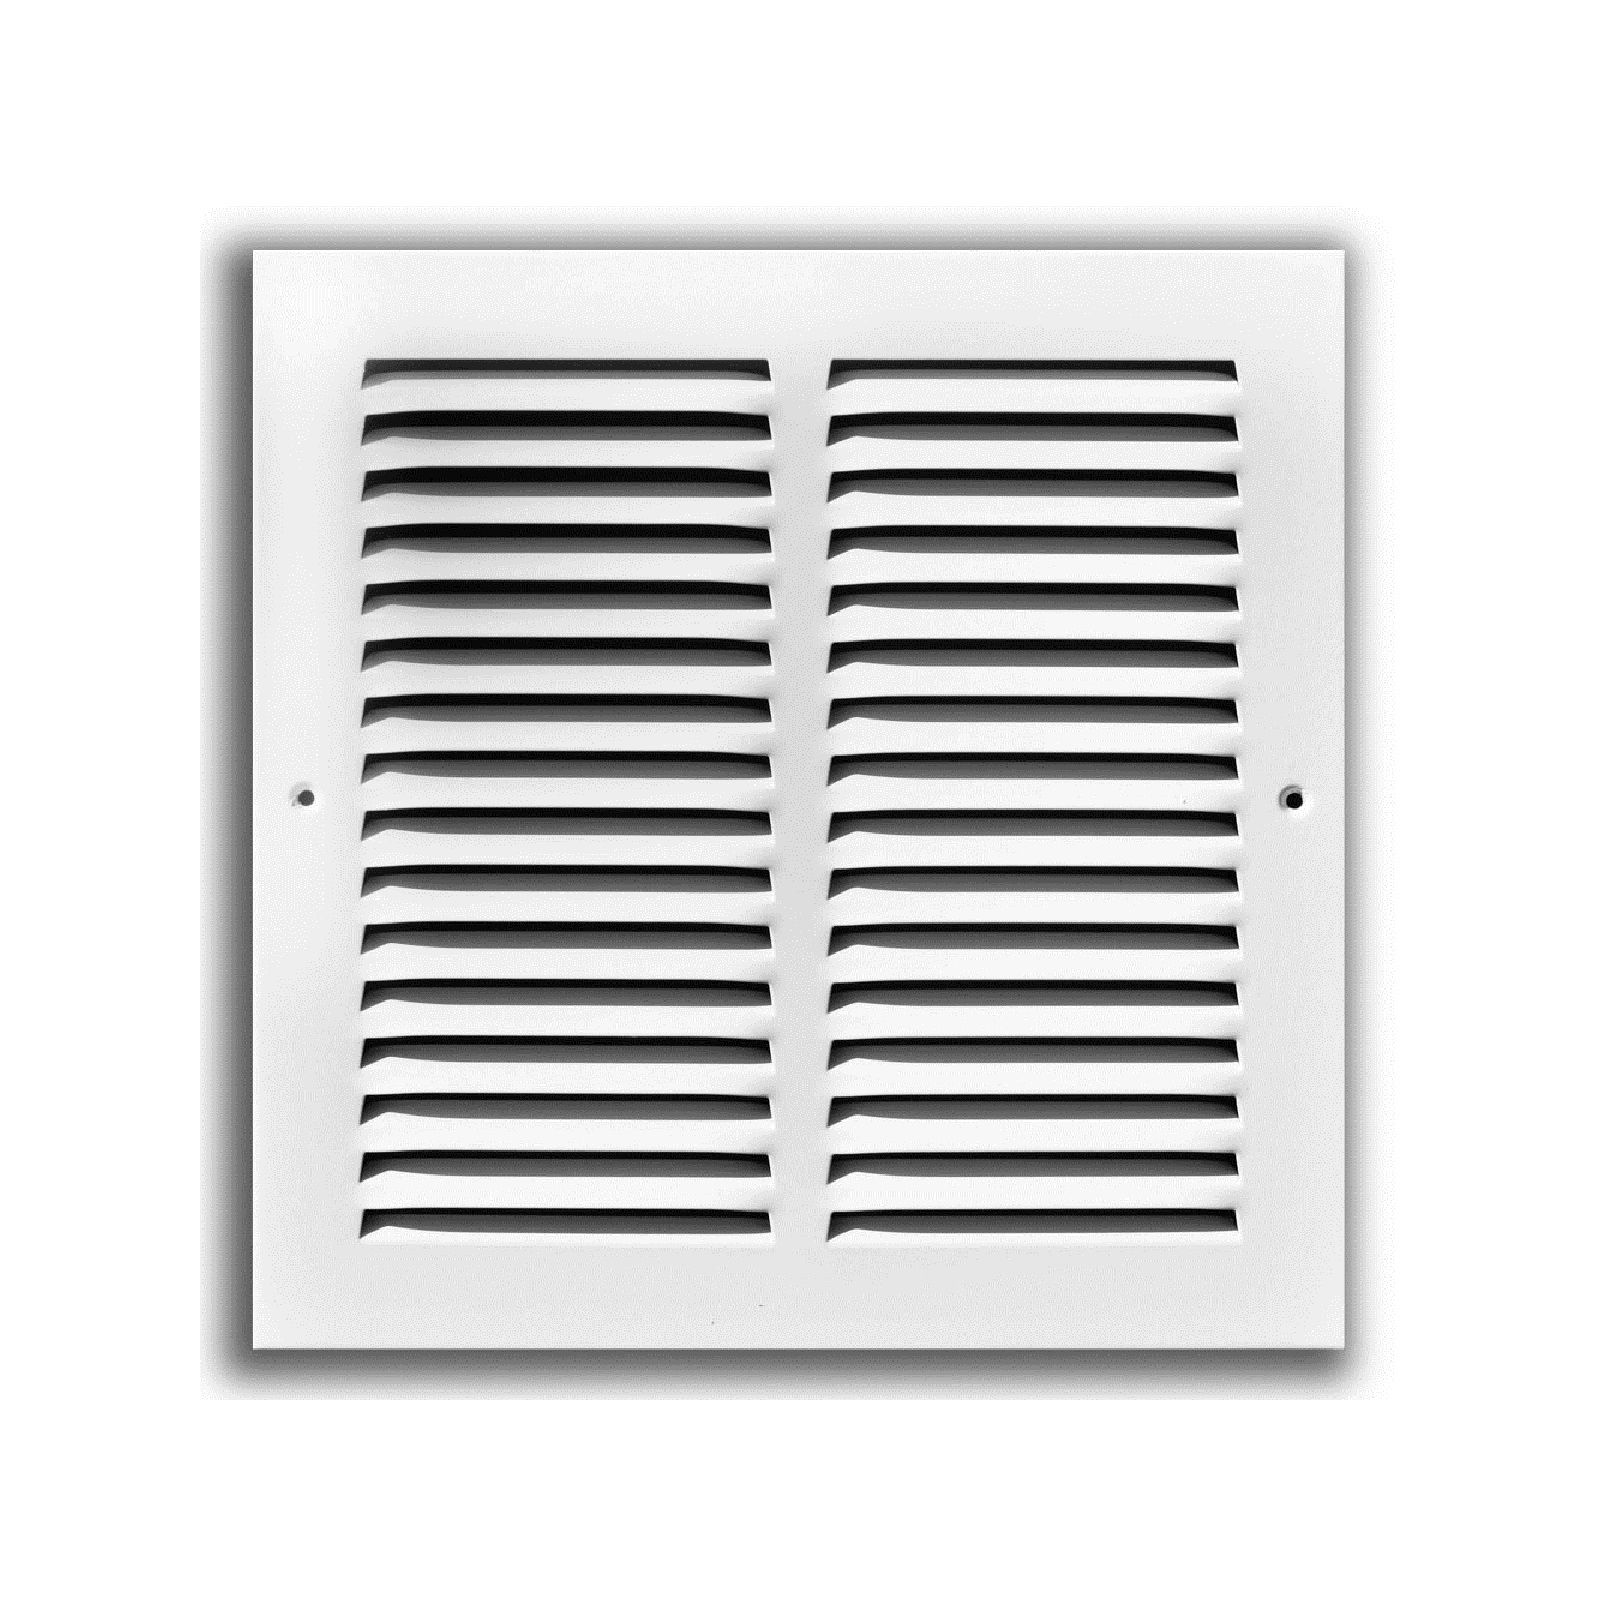 "TRUaire 170 30X14 - Steel Return Air Grille - 1/2"" Spaced Fin, White, 30"" X 14"""